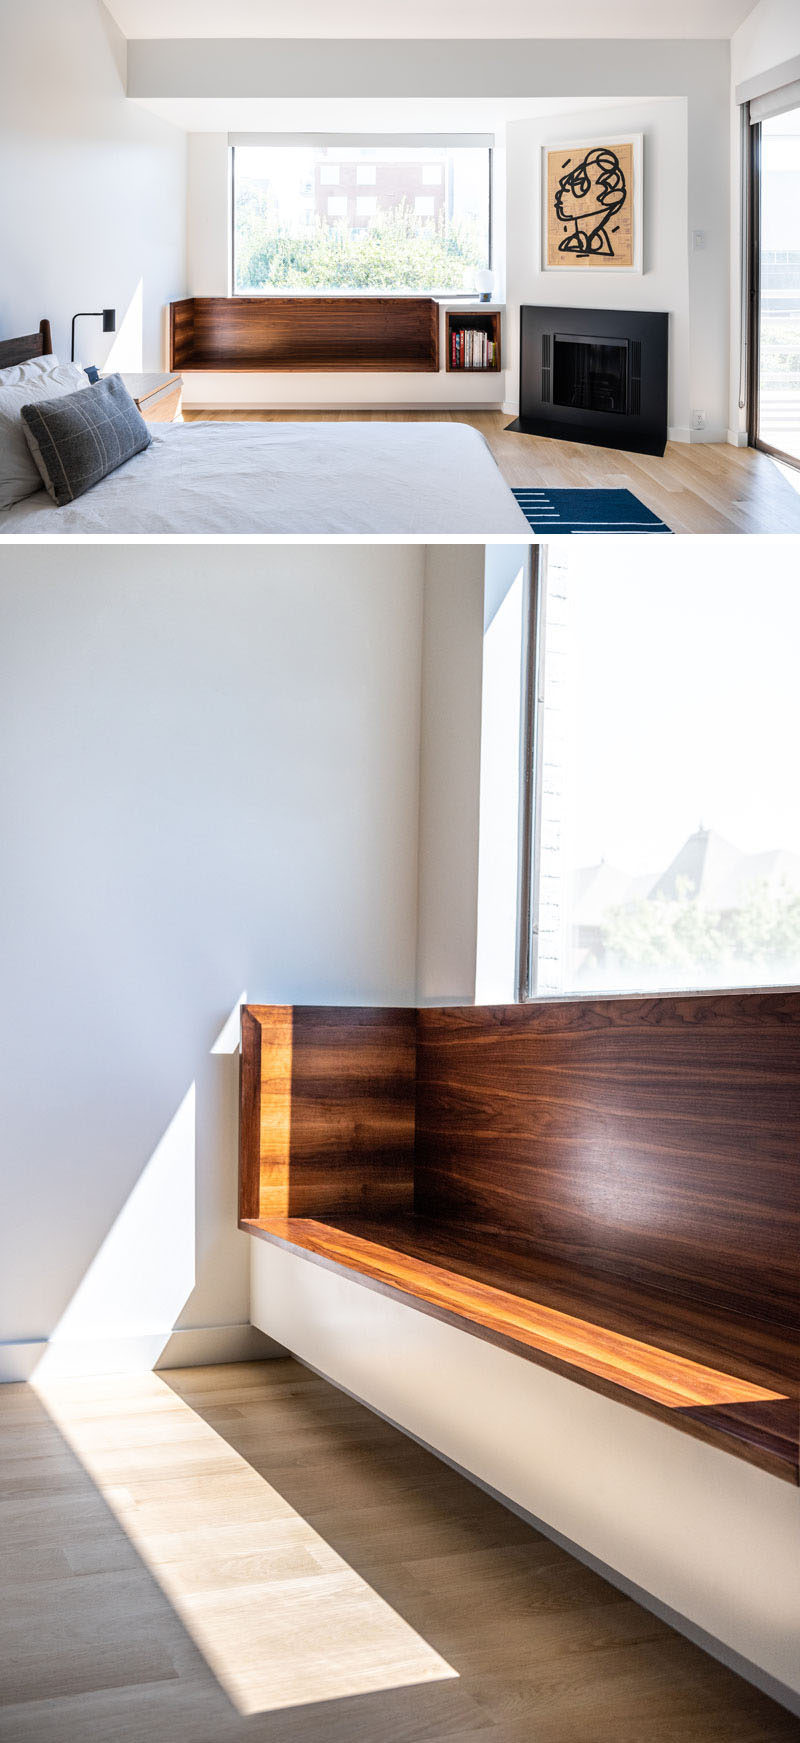 Window Seat Bookshelf Design Detail A Built In Window Seat With Shelving Was Added To